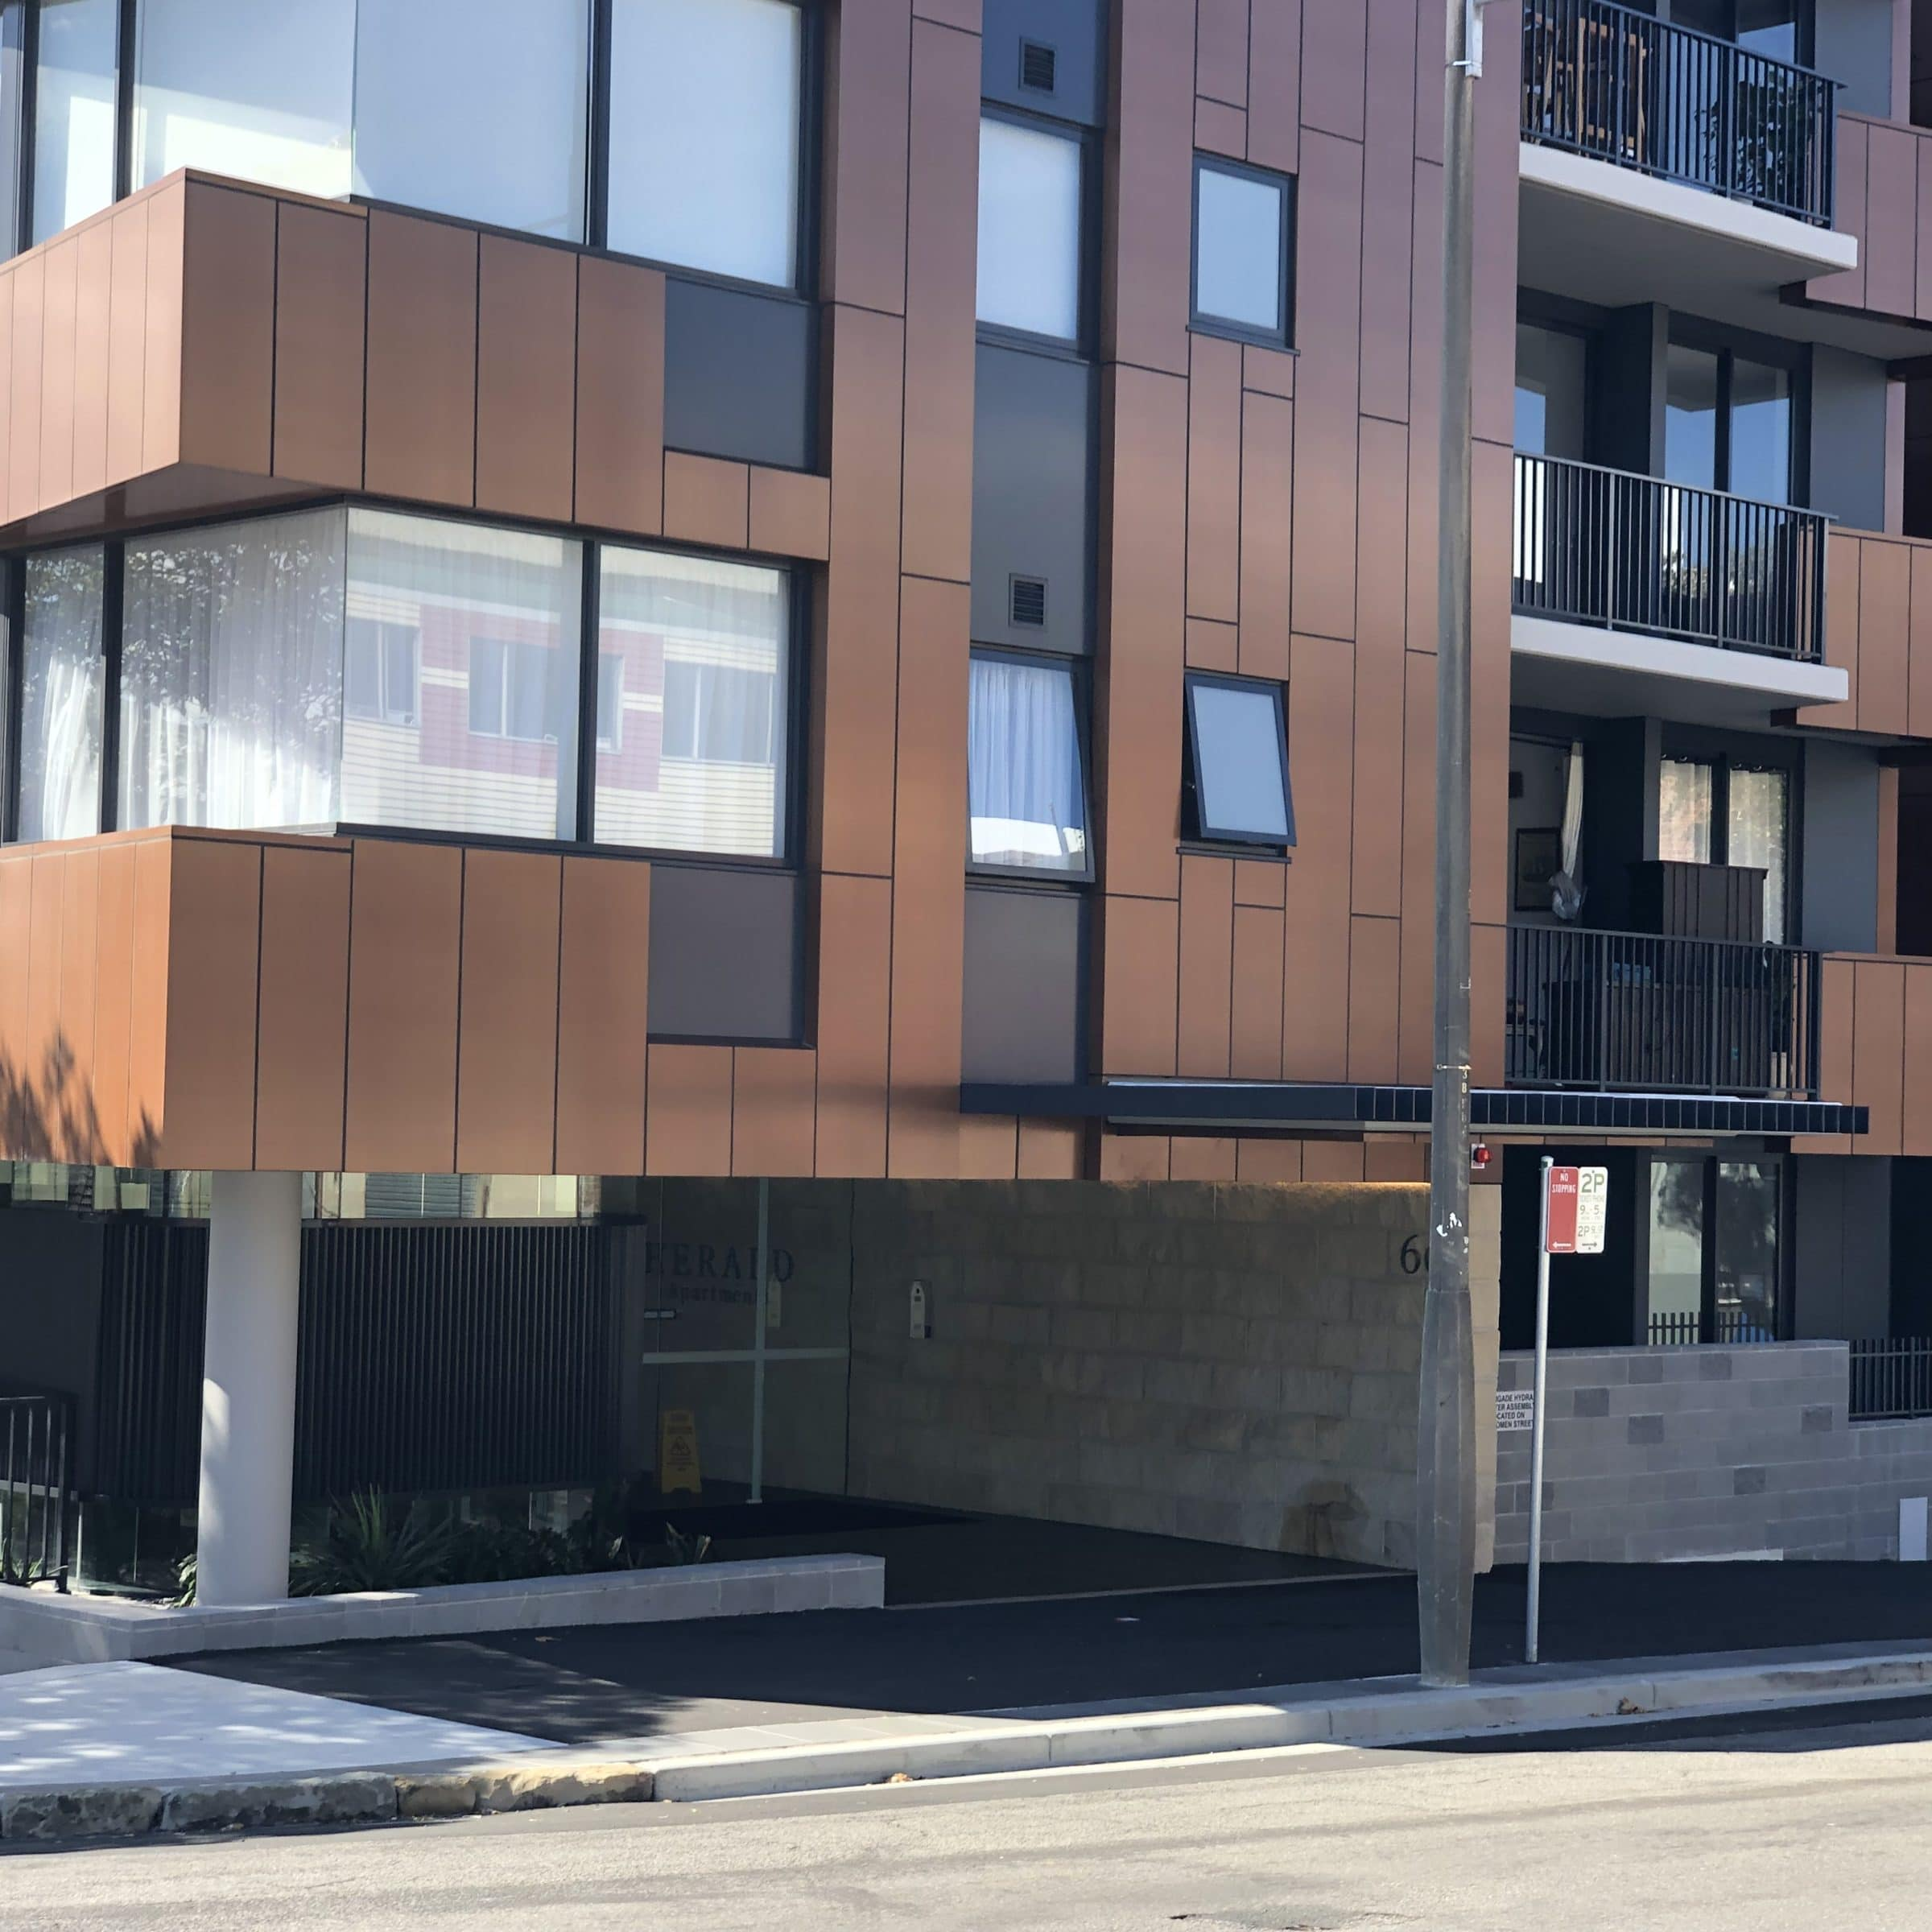 Herald Apartments - https://www.newcastleapartments.com.au/wp-content/uploads/2019/12/Exterior-scaled.jpg